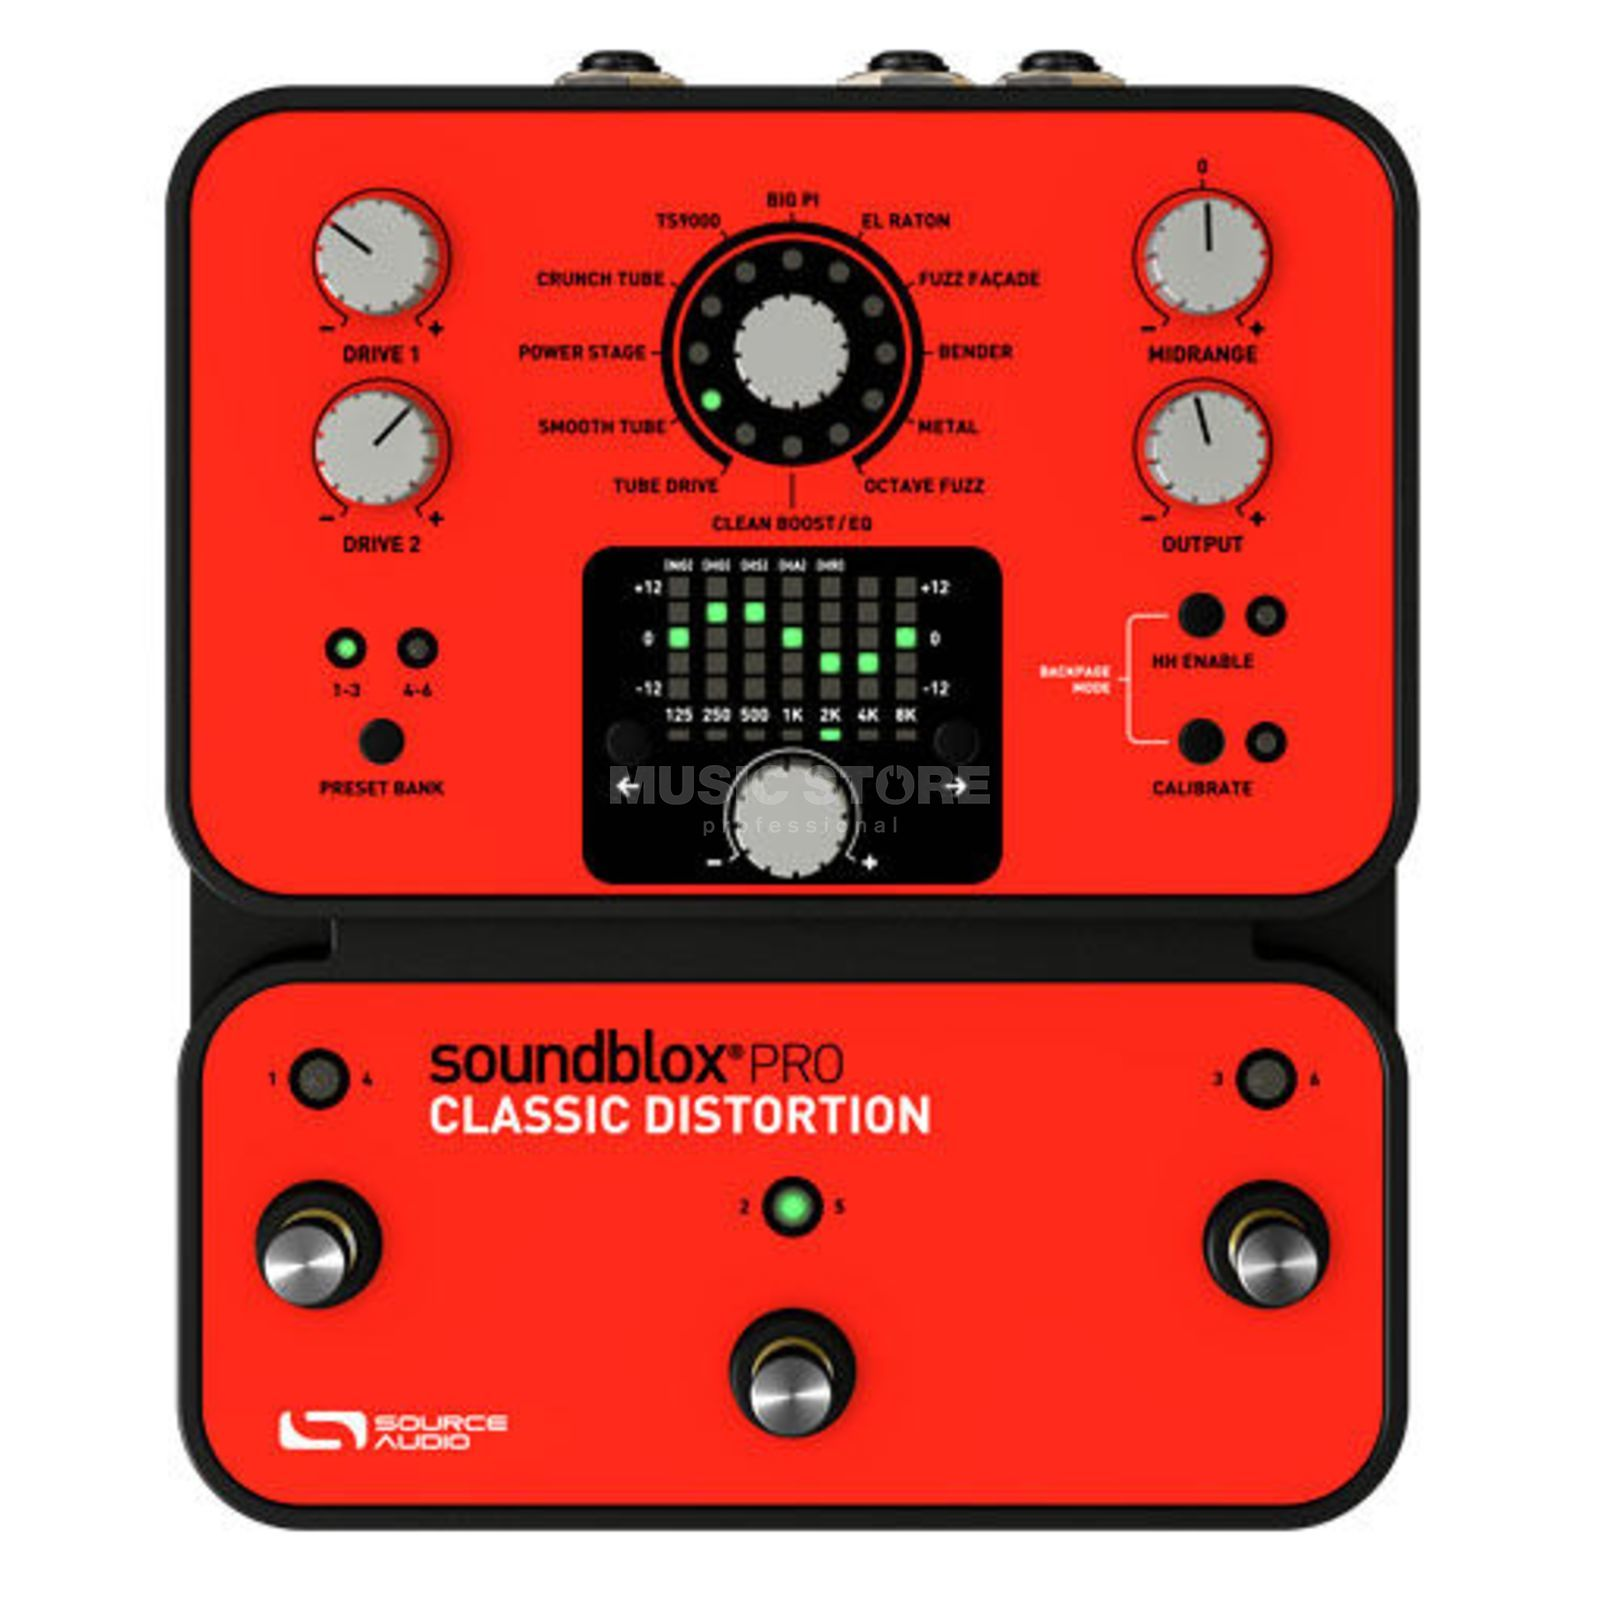 Source Audio Soundblox Pro Classic Distort Product Image